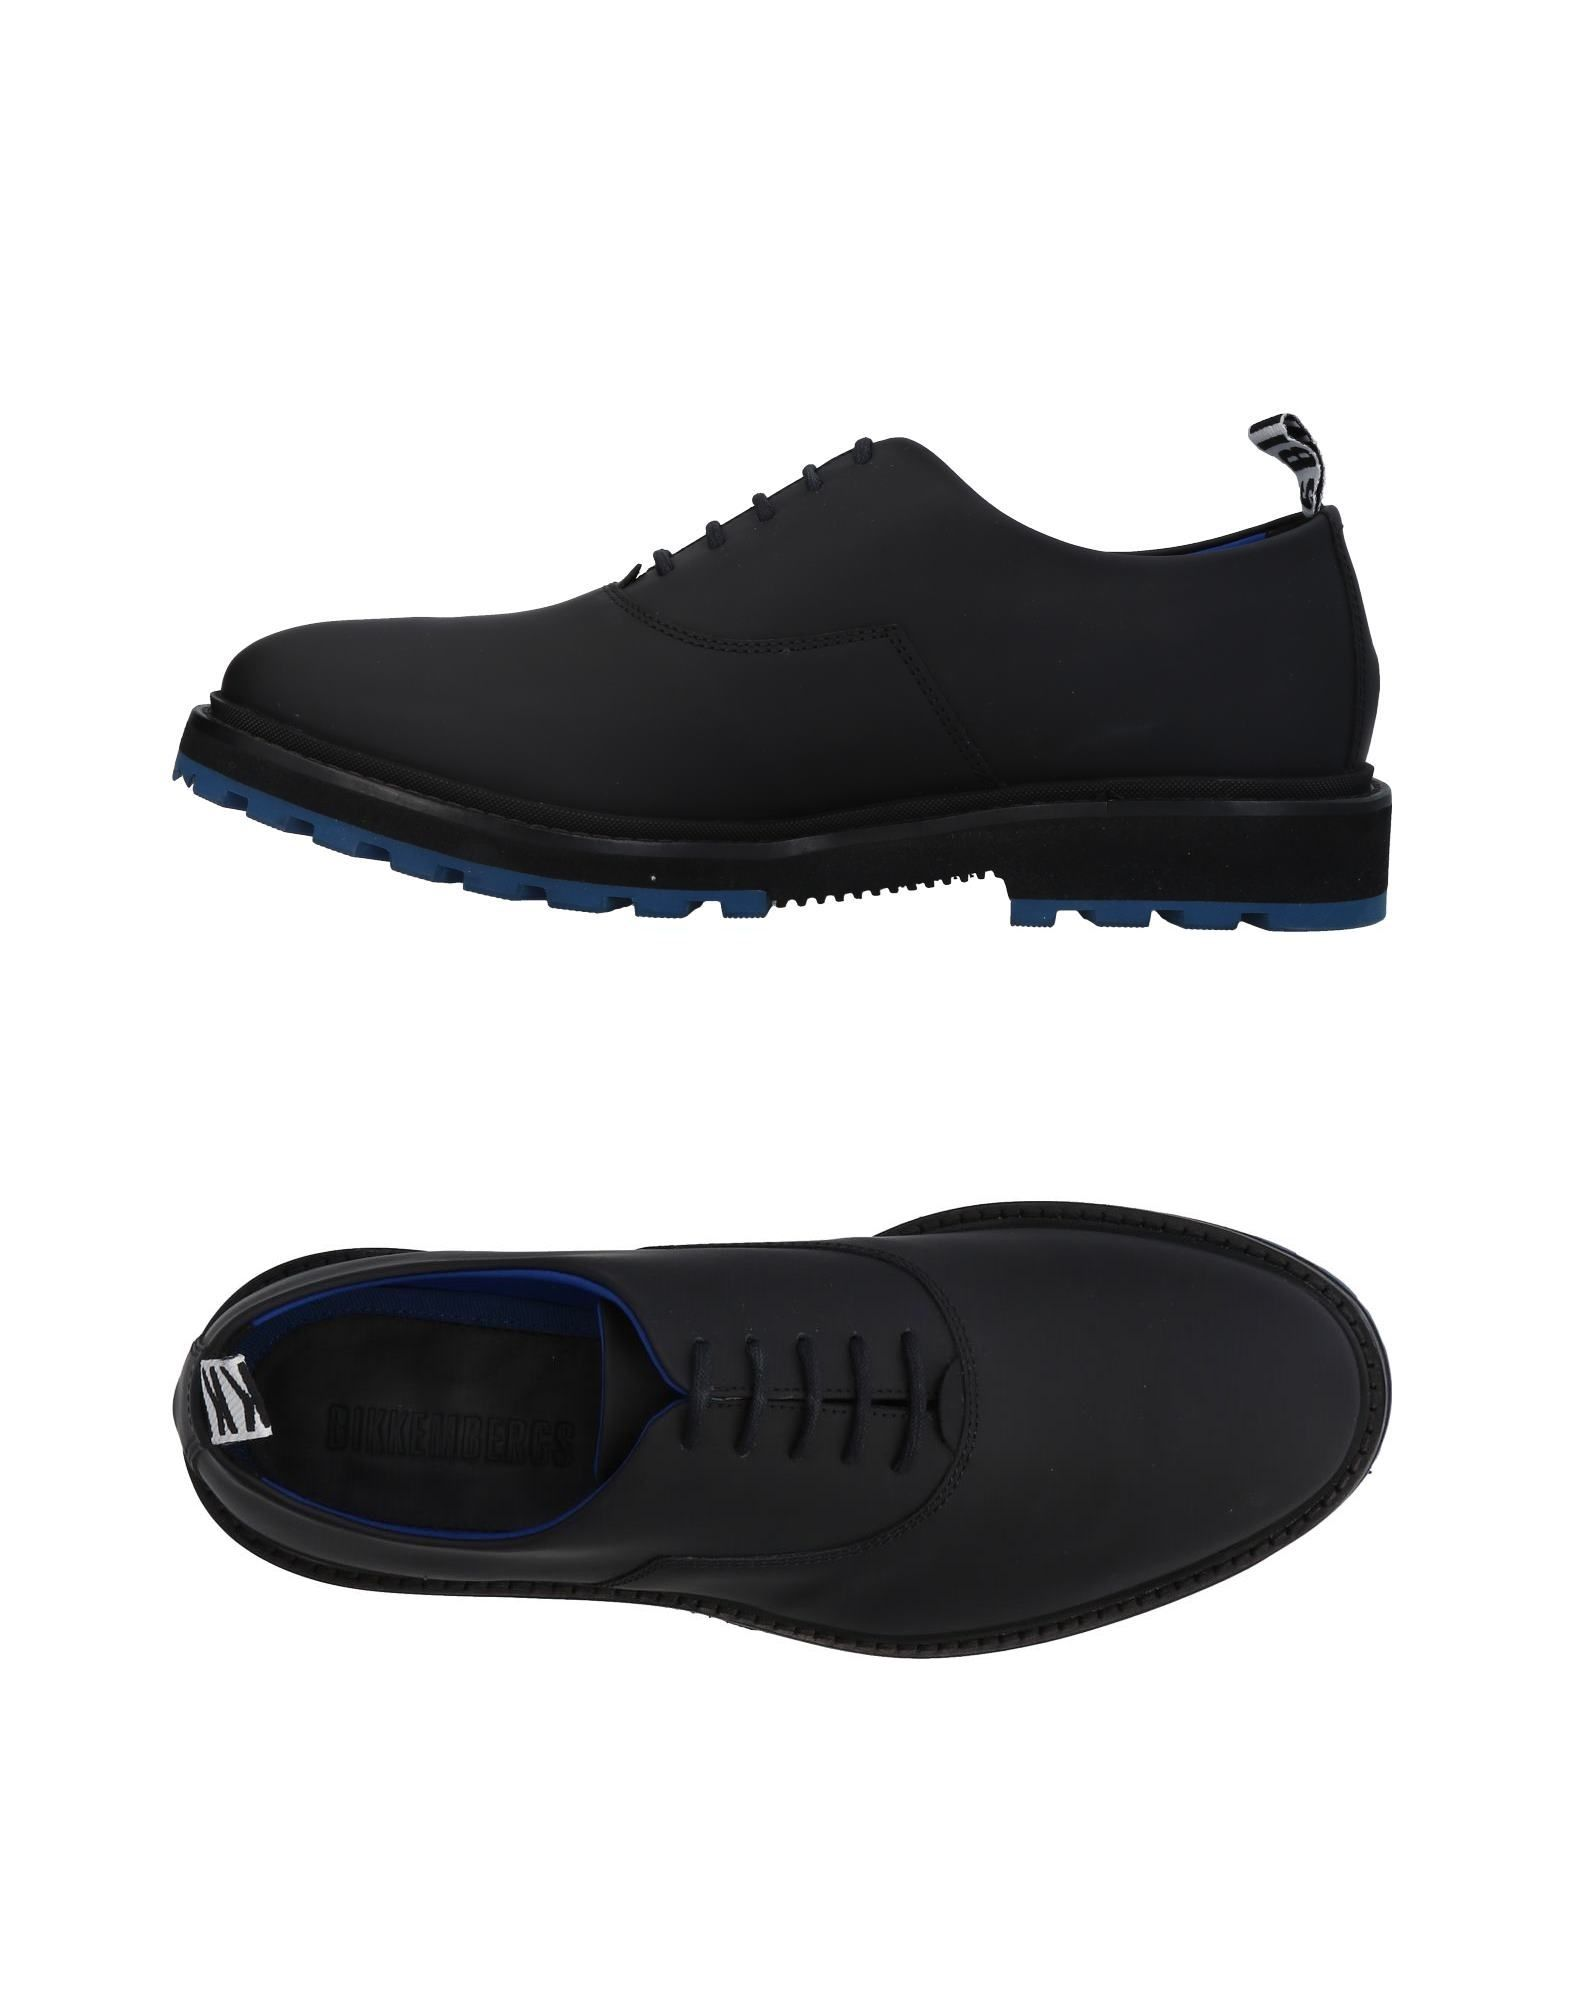 Chaussures À Lacets Bikkembergs Homme - Chaussures À Lacets Bikkembergs sur